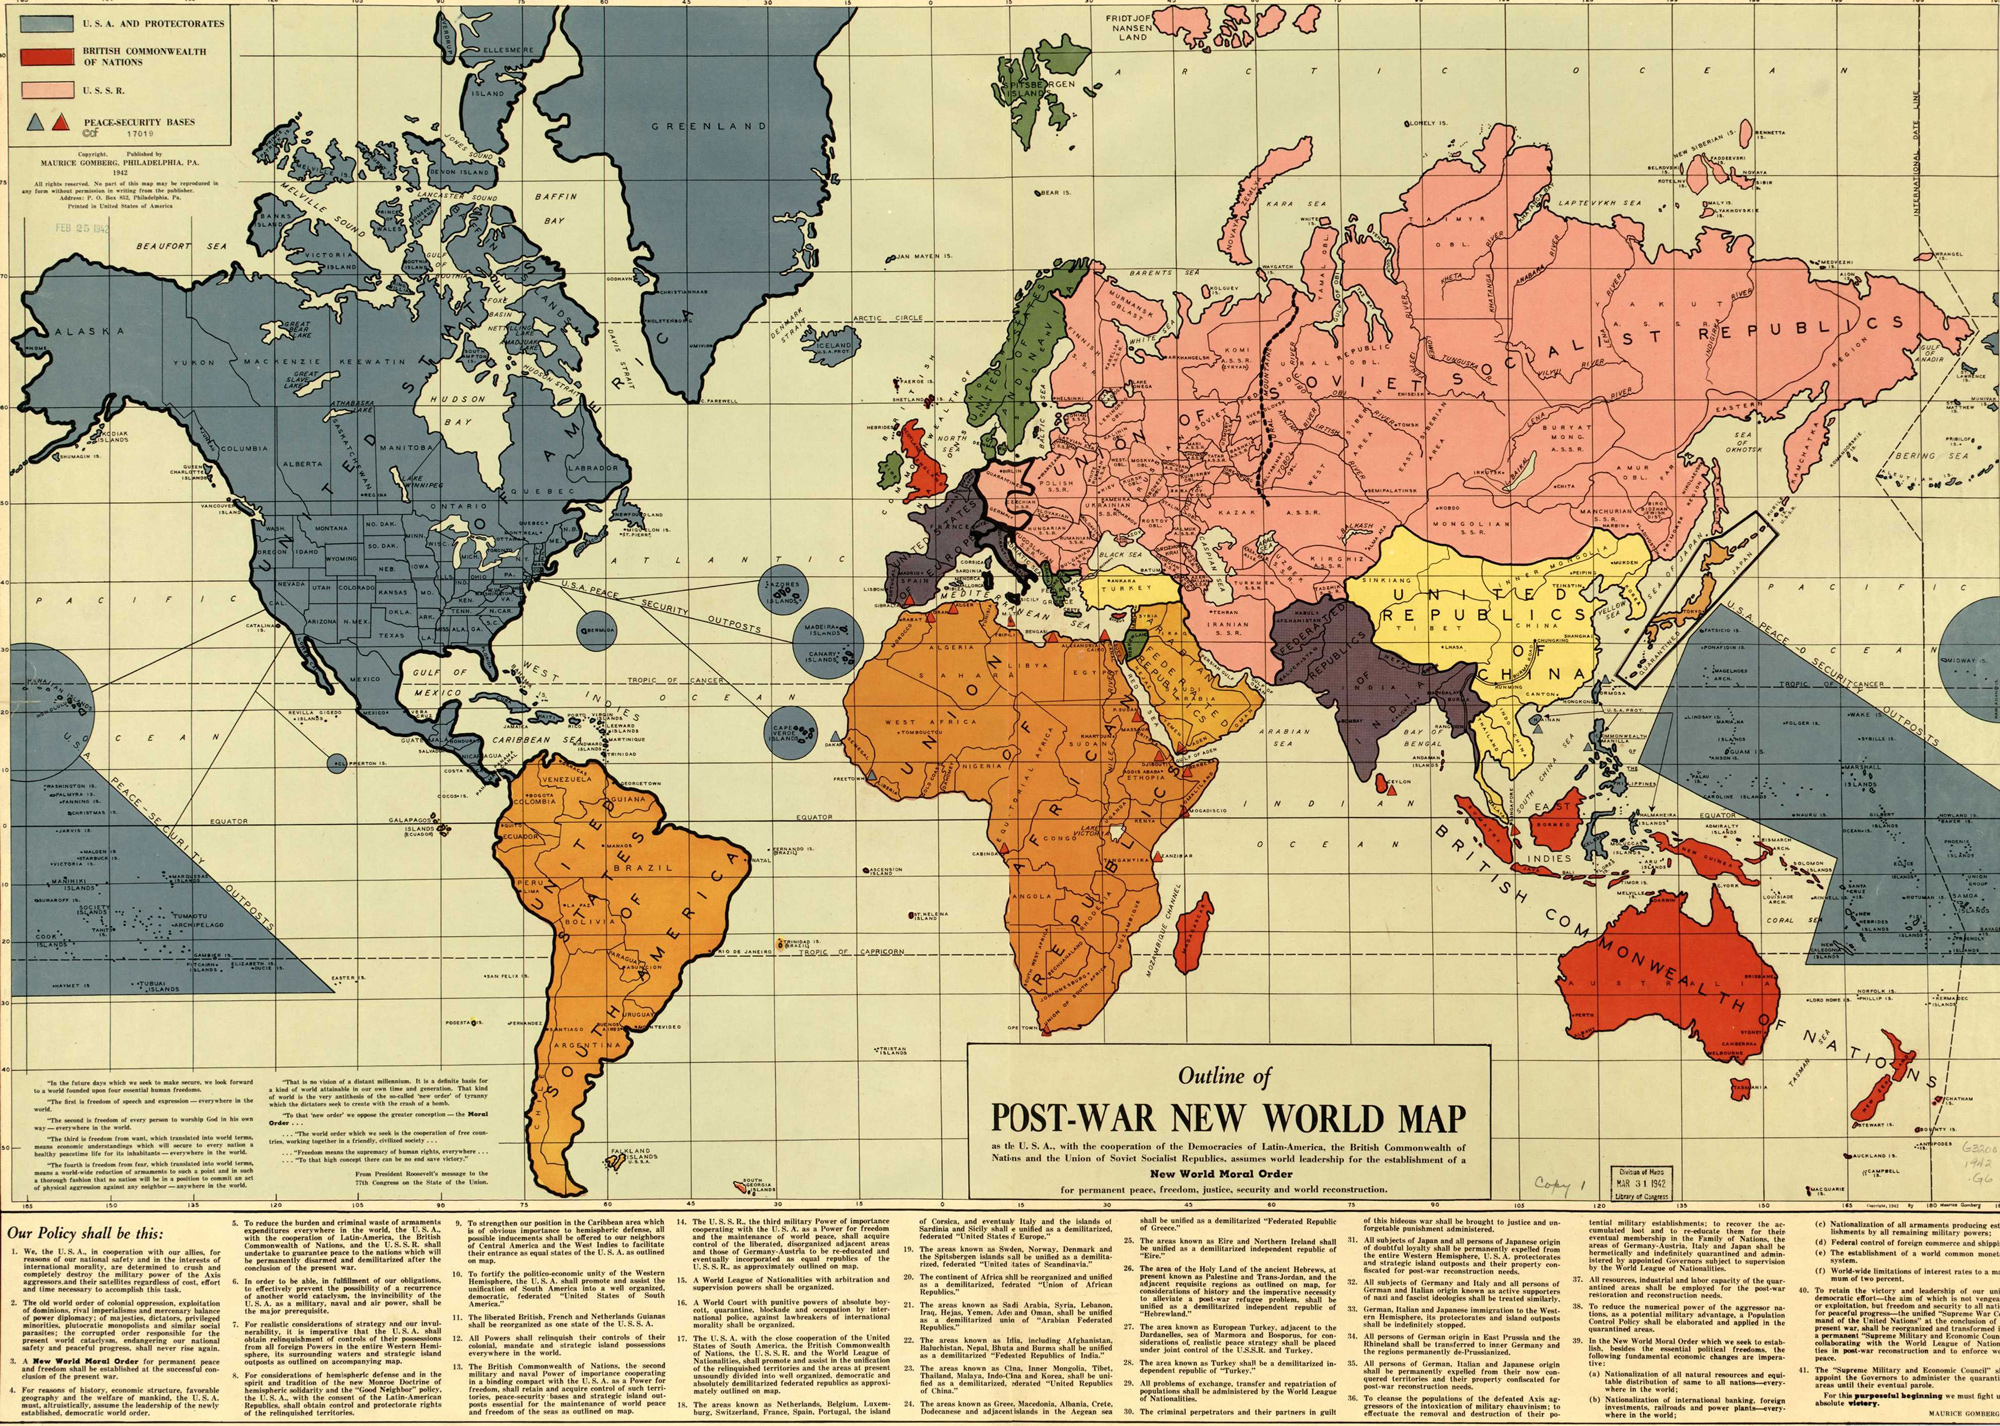 New World Map Outline of post war new world map   The British Library